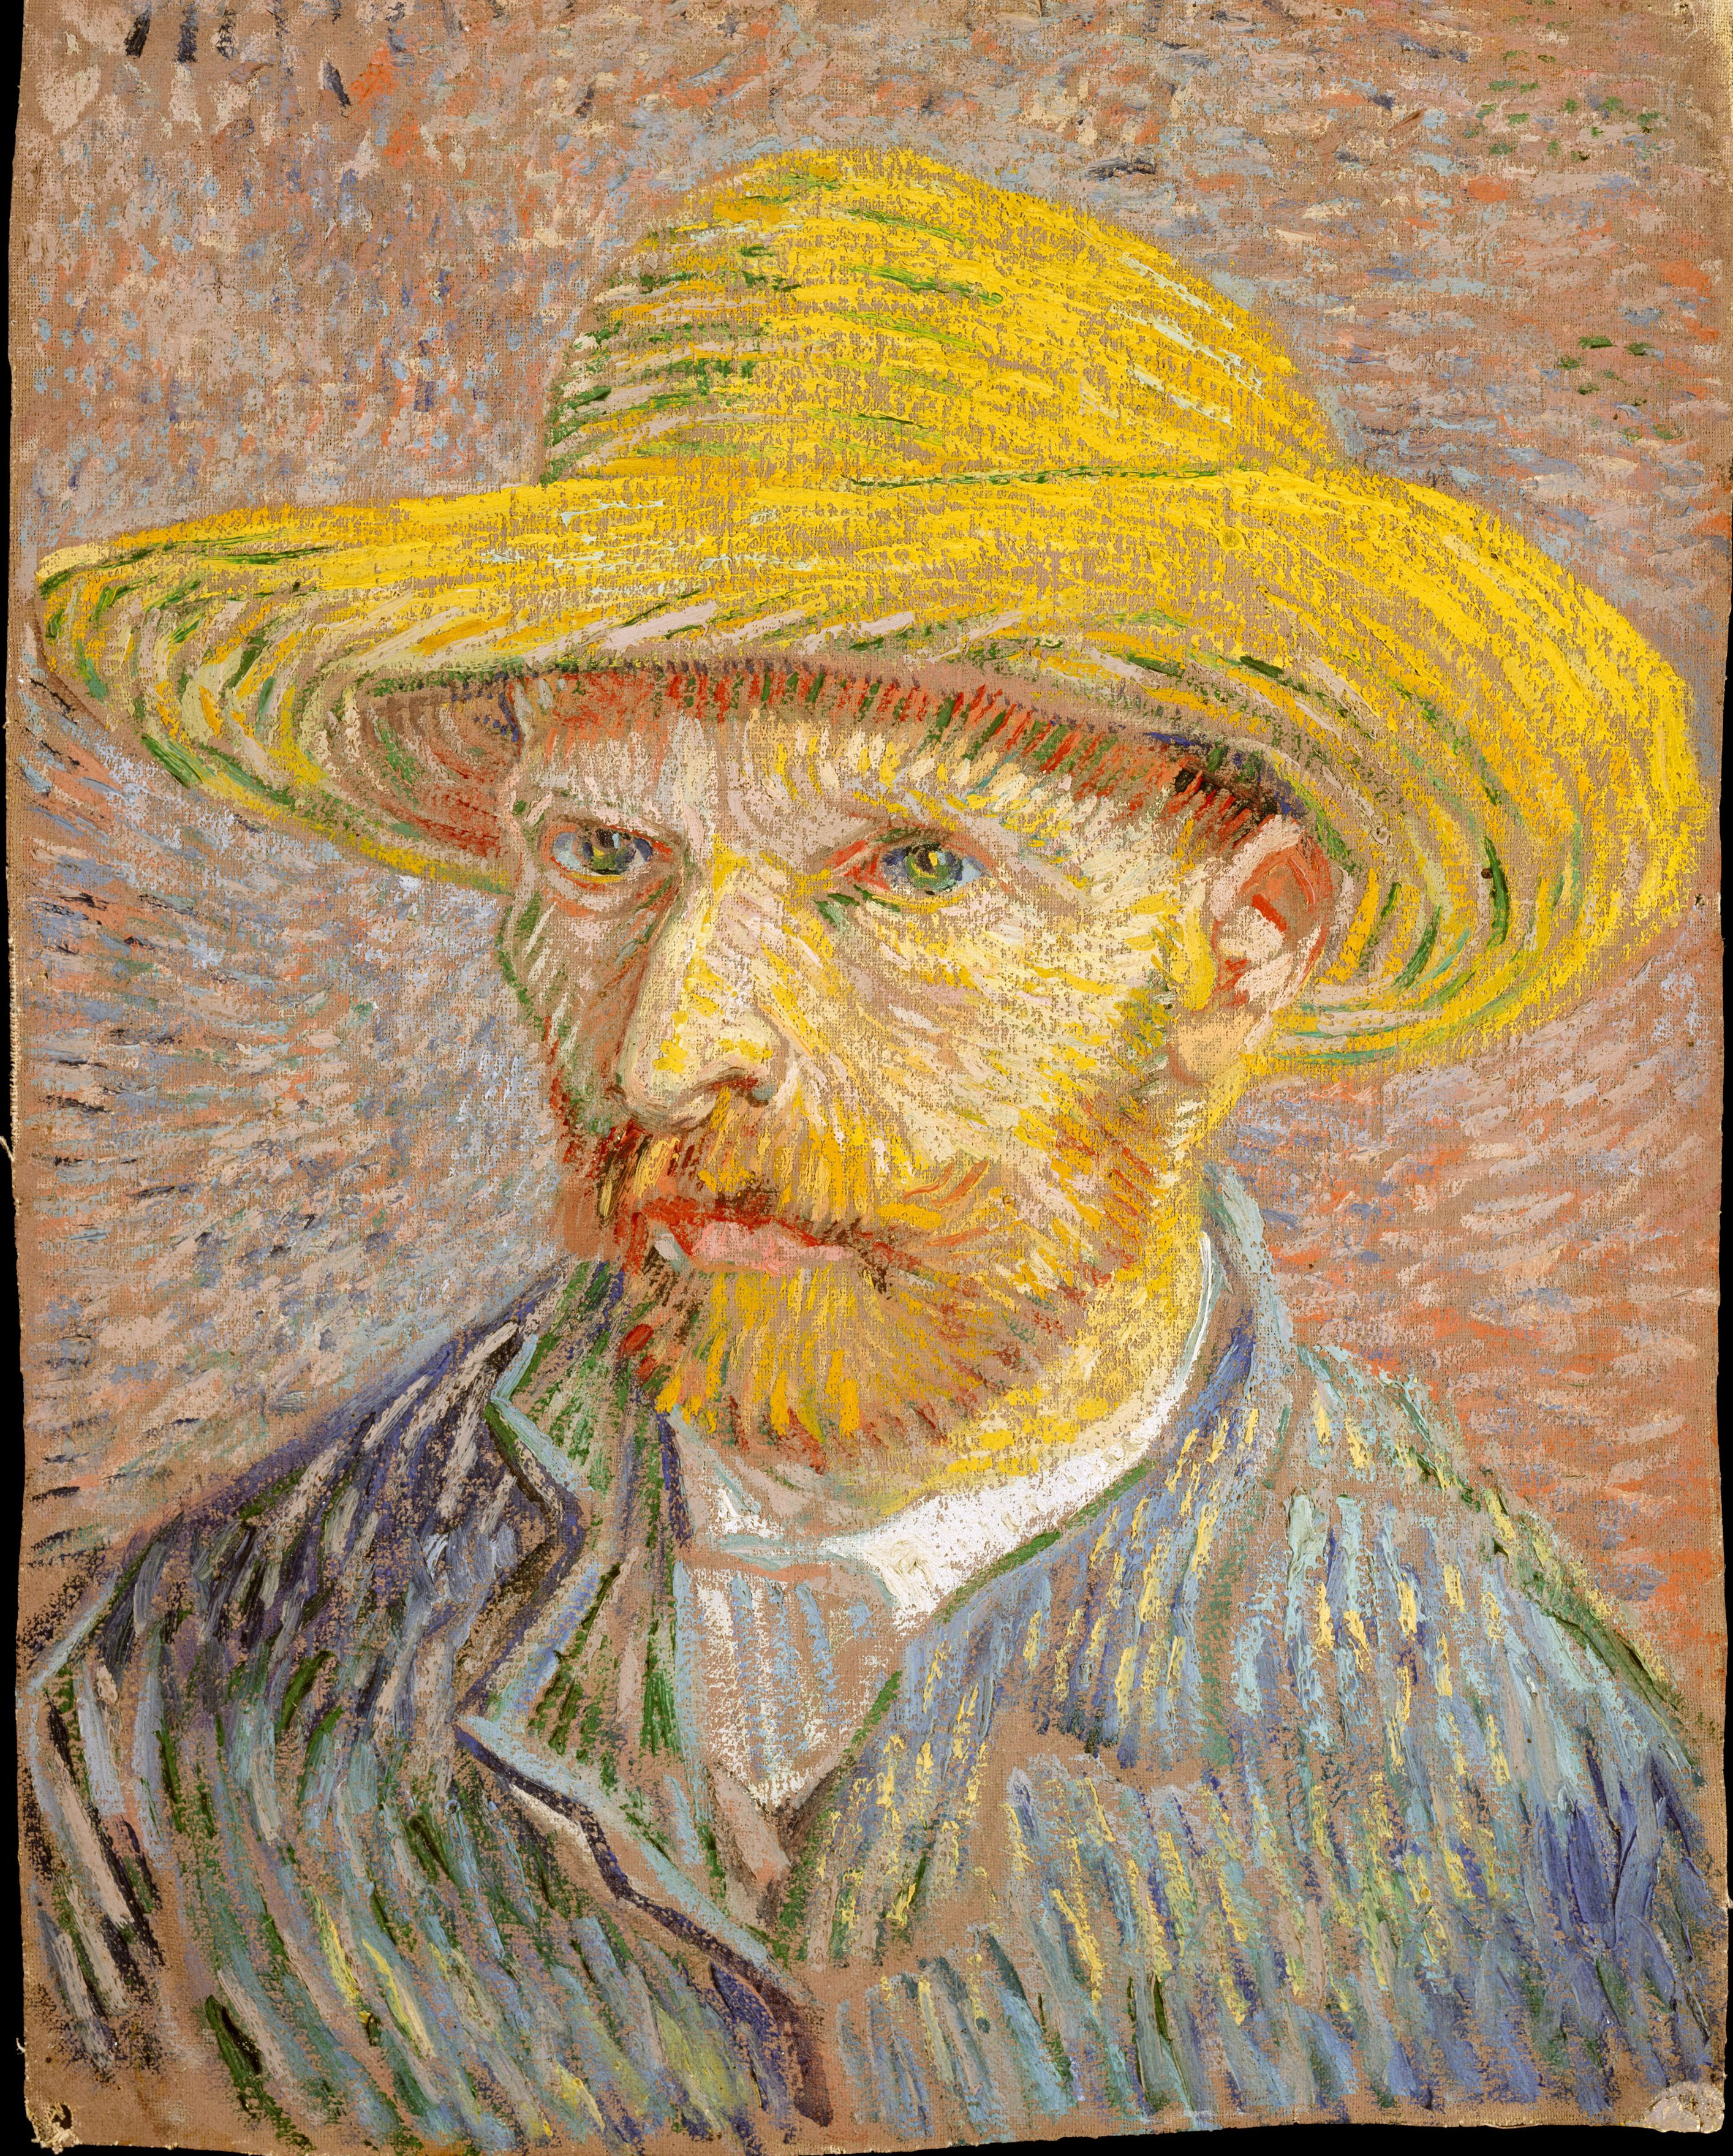 Vincent van Gogh  SelfPortrait with a Straw Hat obverse The Potato Peeler  The Met